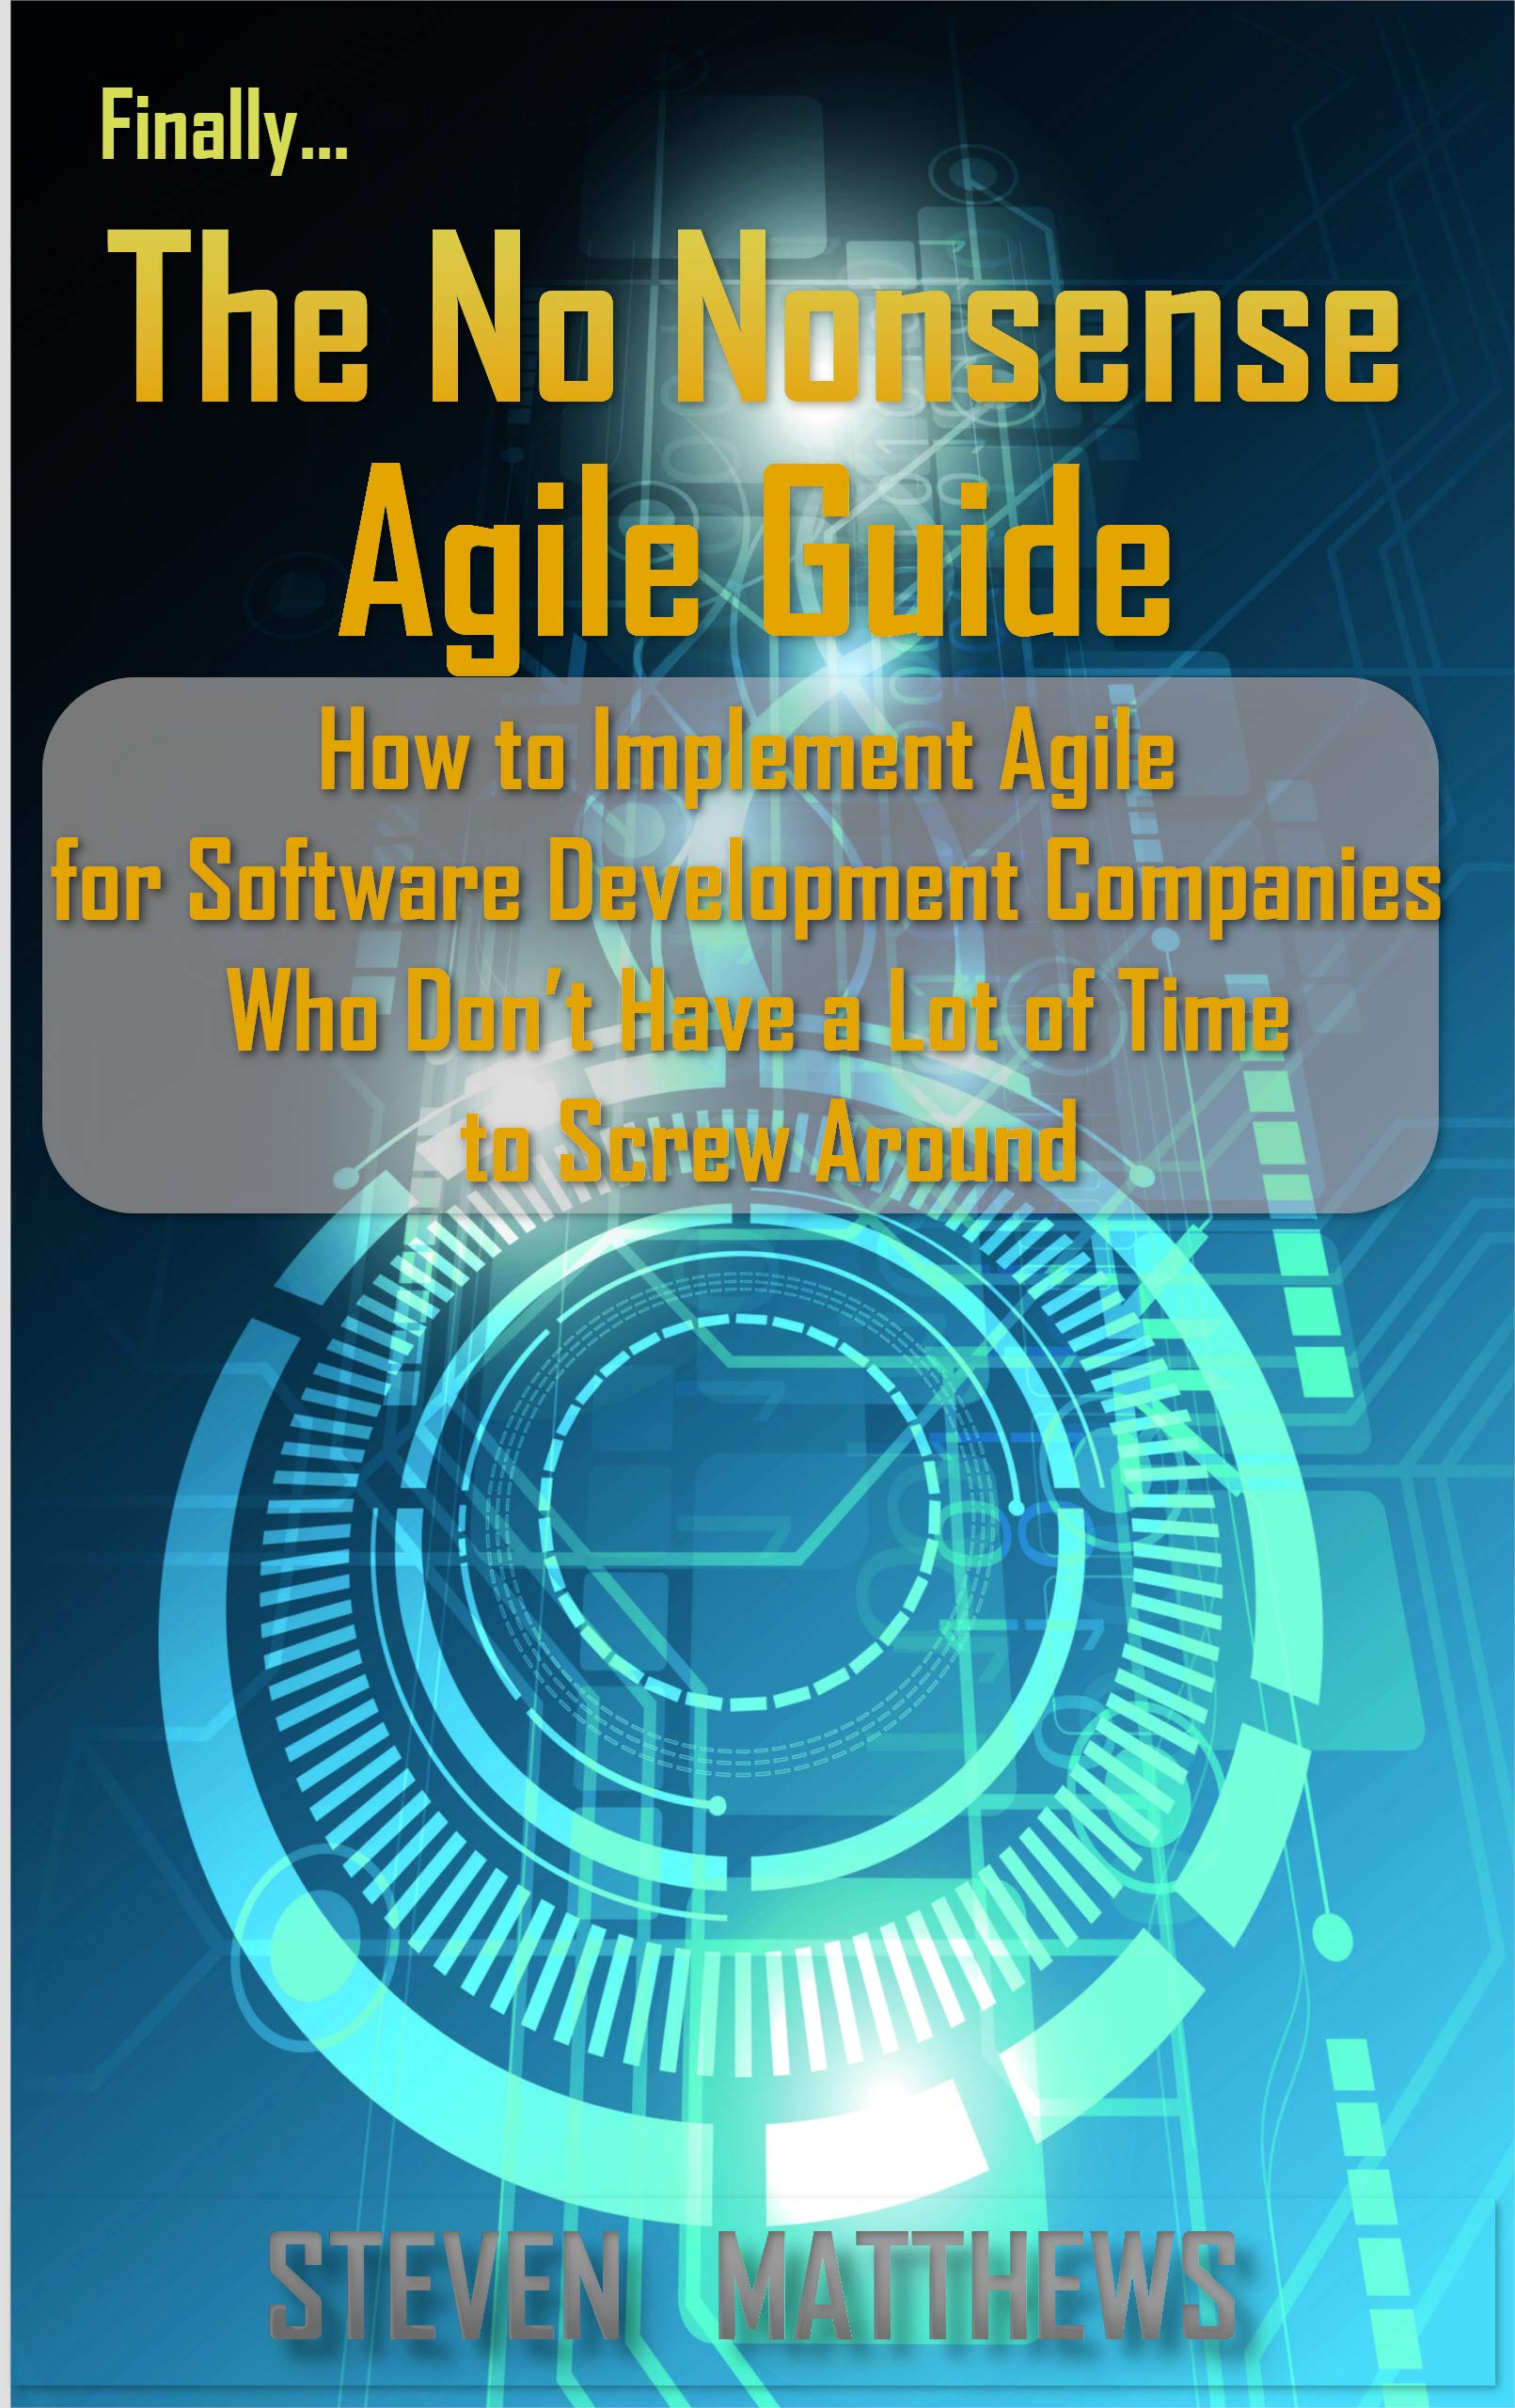 The No Nonsense AGILE Guide: How to Implement AGILE for Software Development Companies Who Don't Have a Lot of Time to Screw Around